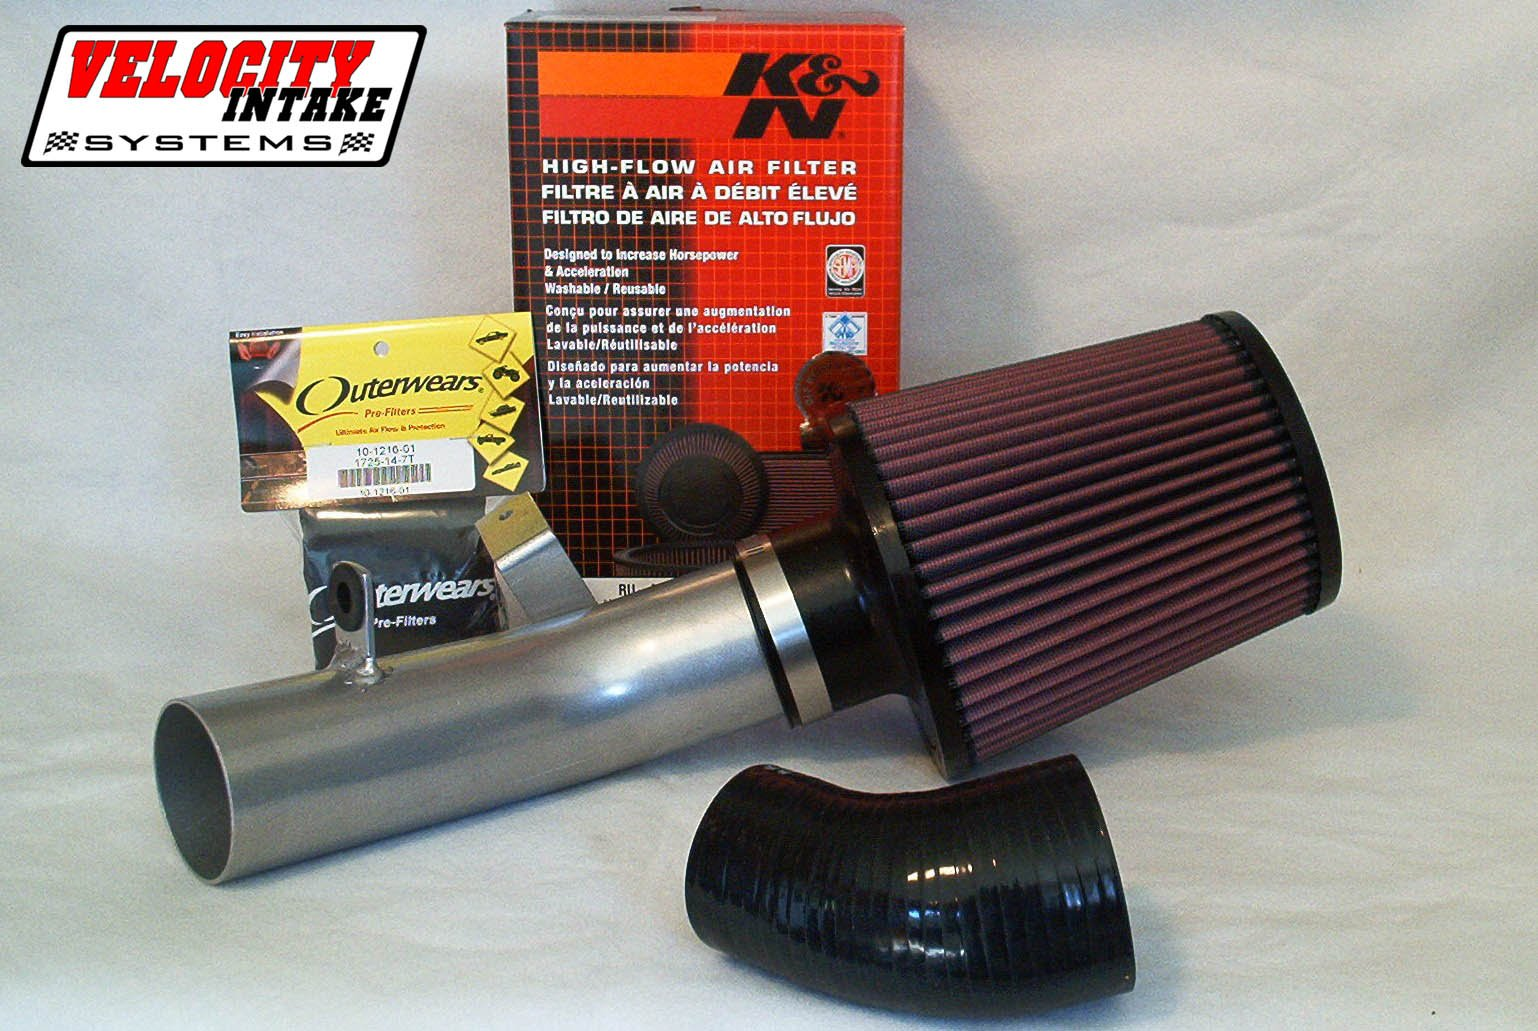 Malone Motorsports VelI-700r-1L Raptor 700 Velocity Intake System with Large K&N Filter by Velocity Intake Systems (Image #1)